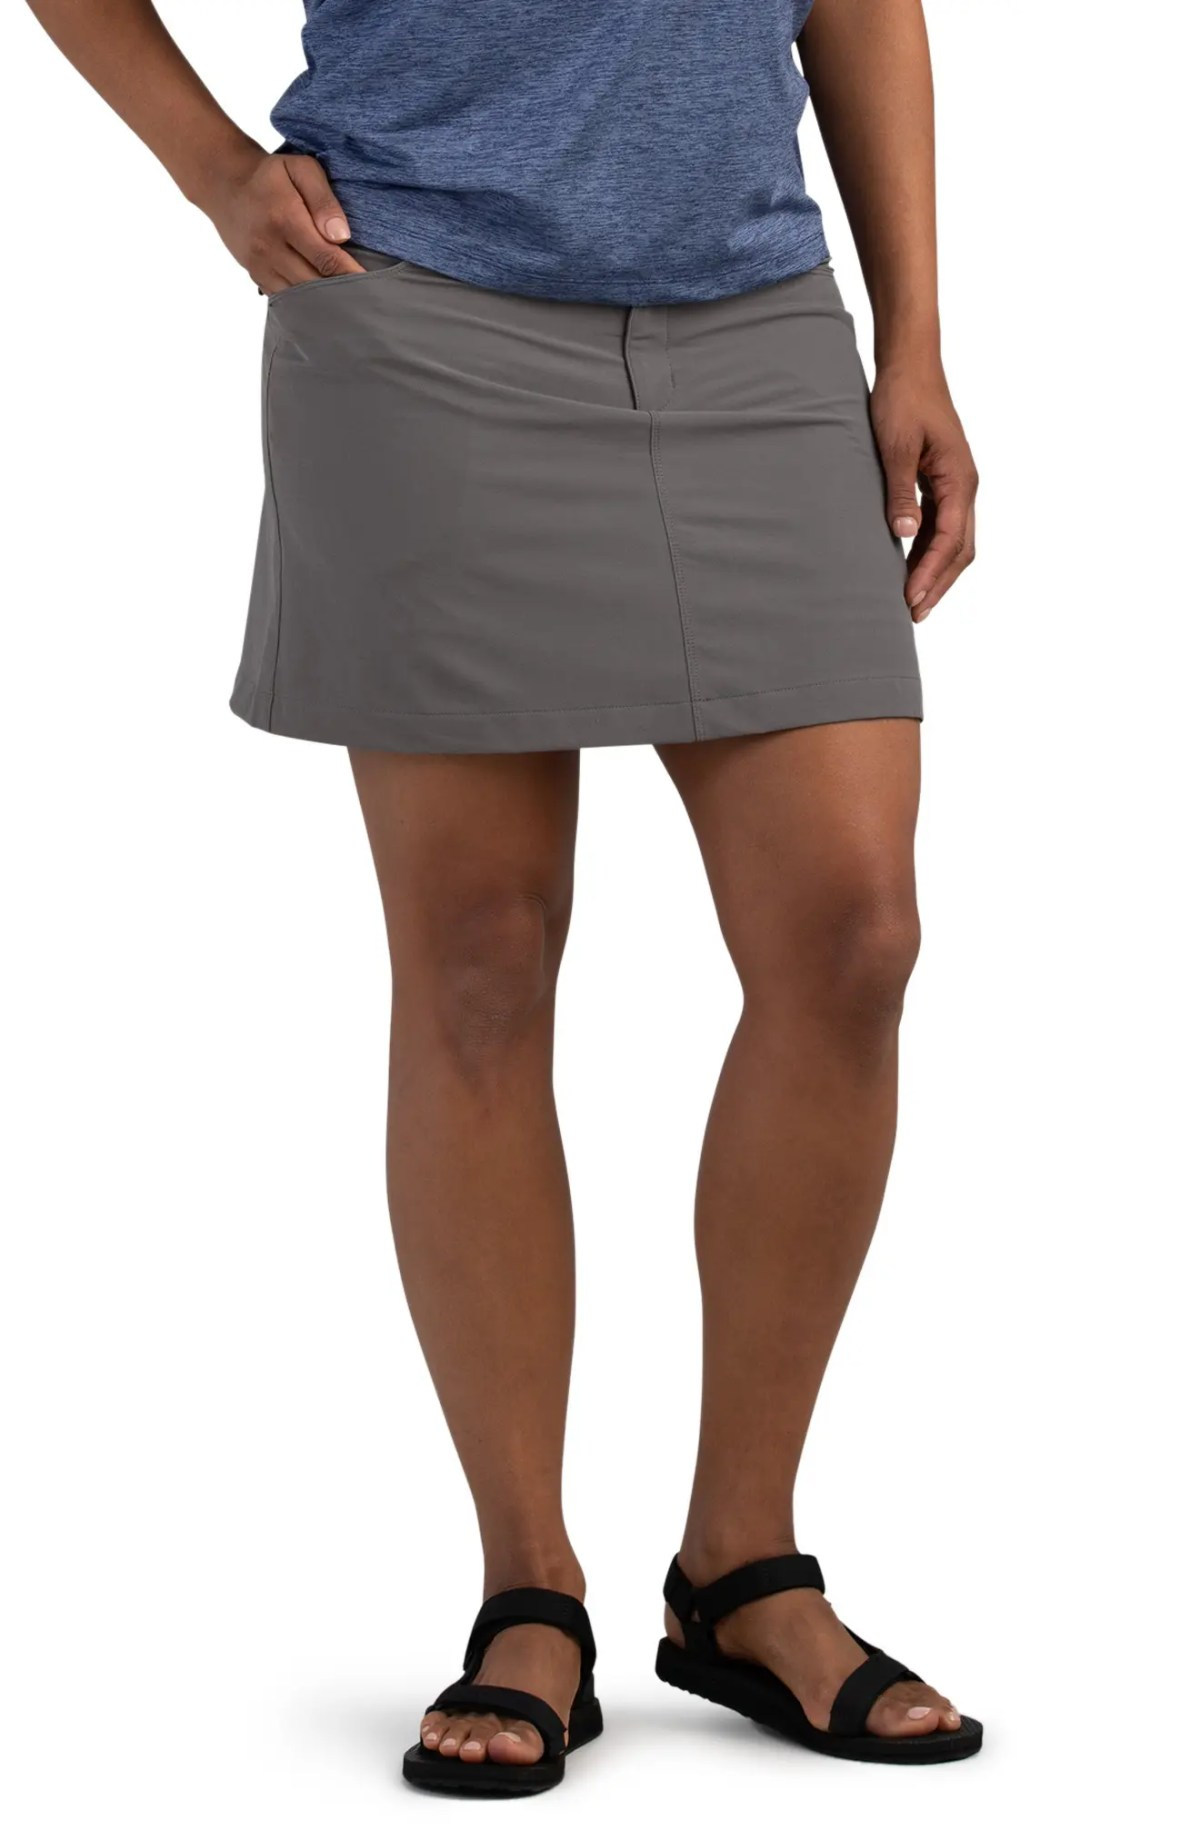 OUTDOOR RESEARCH Women's Ferrosi Performance Skort, Main, color, PEWTER